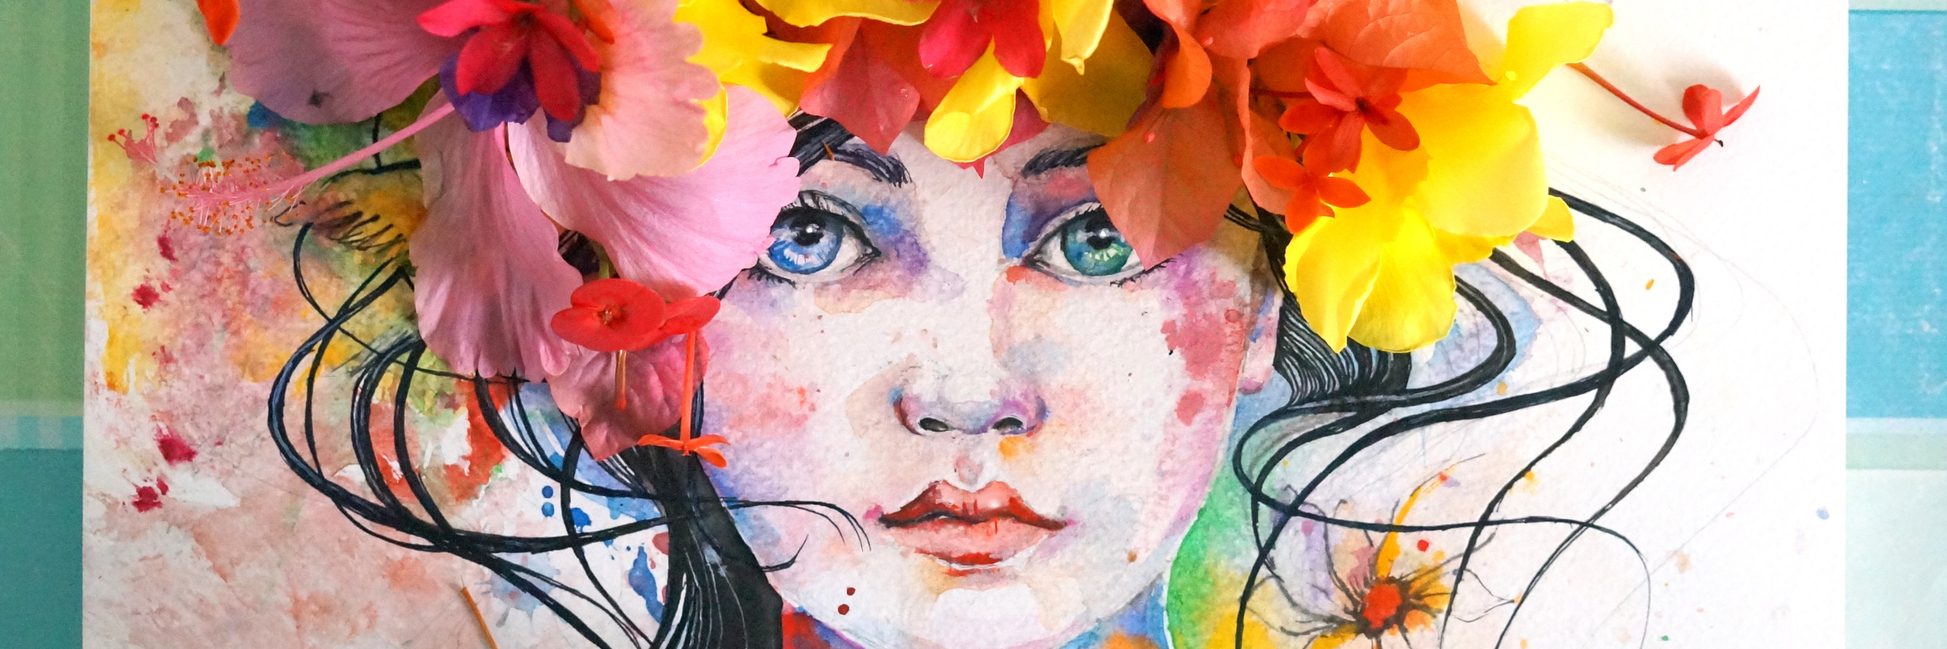 watercolor painting of a woman with flowers placed on top of her head